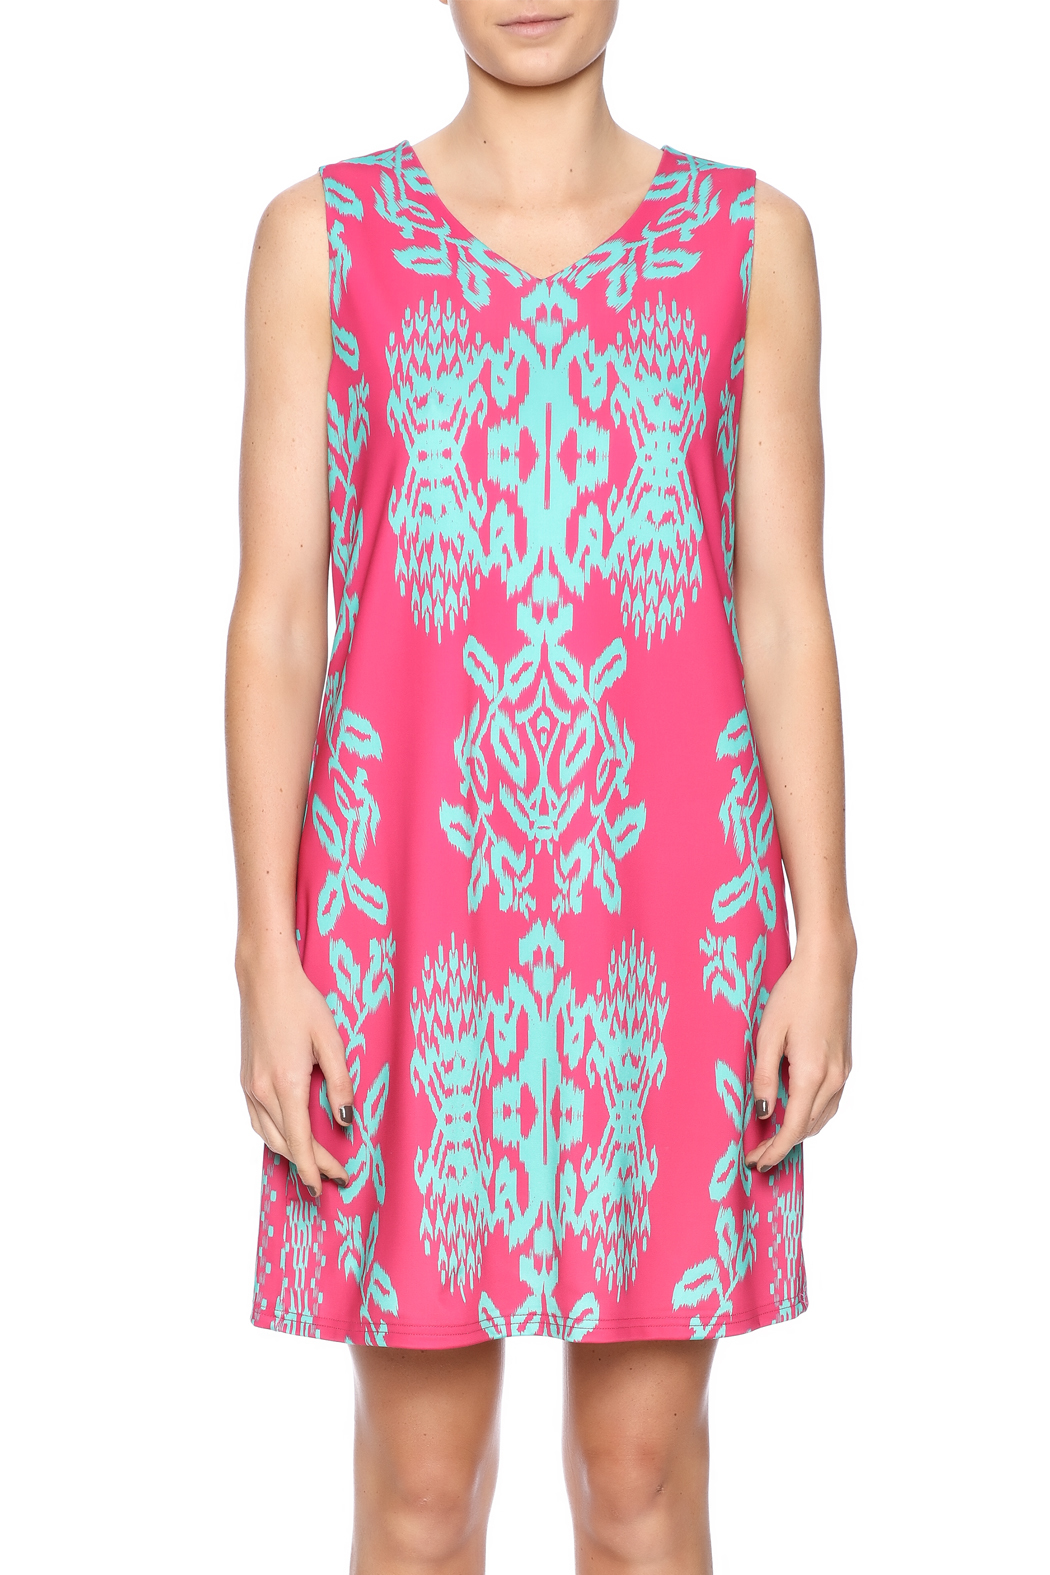 Aryeh Pretty In Pink Dress - Side Cropped Image